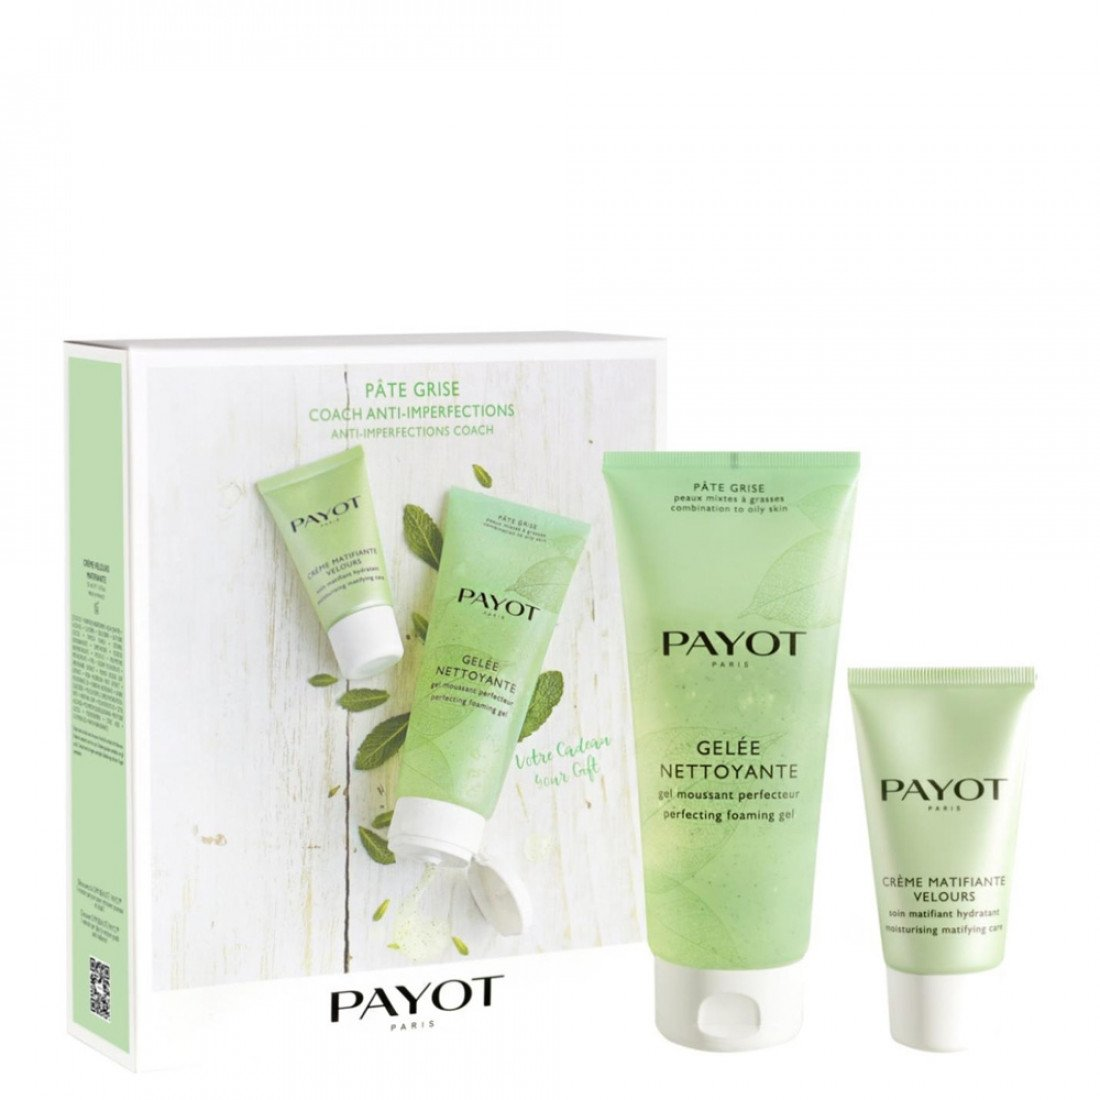 Payot set Pate Grise